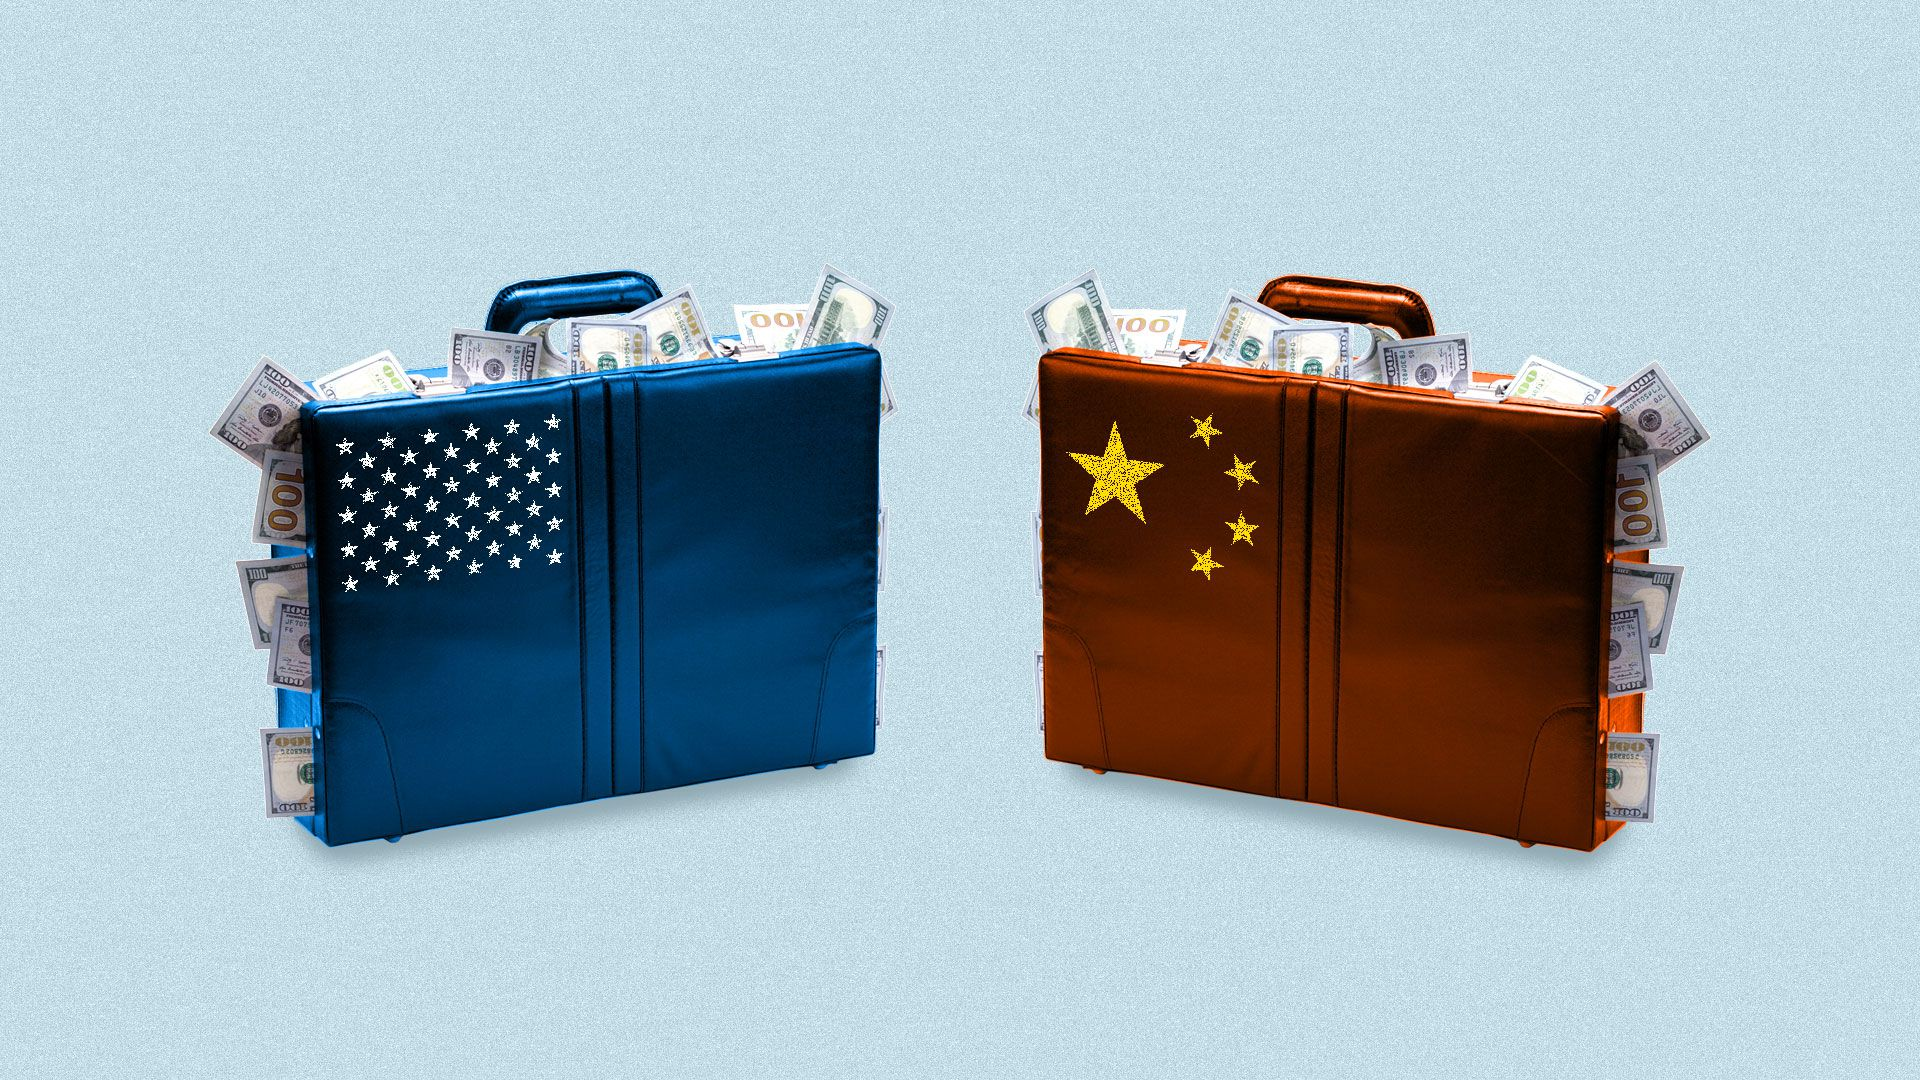 Two suitcases stuffed with cash, with the U.S. and Chinese flags on them